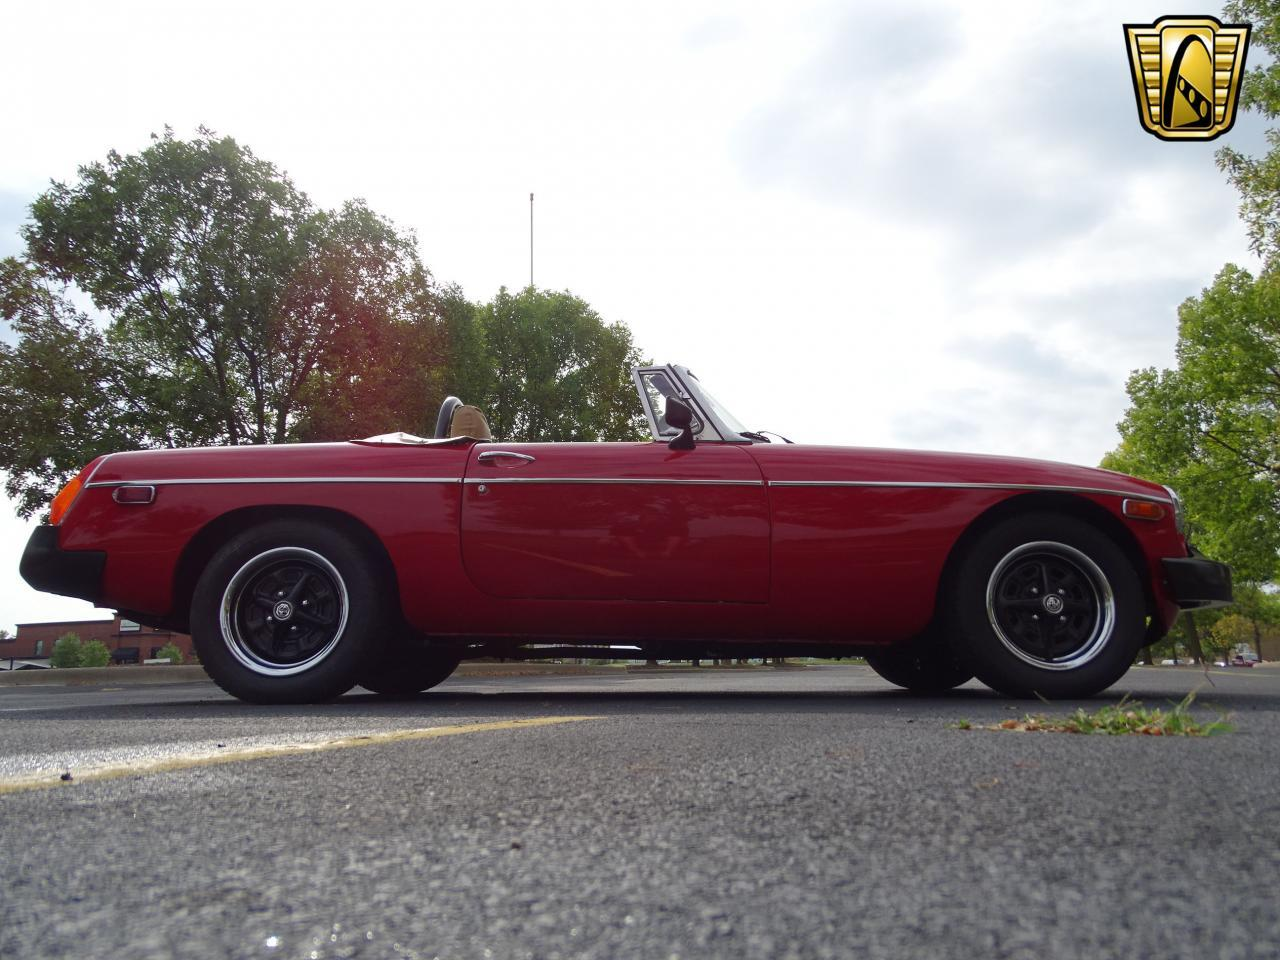 Large Picture of 1978 MG MGB located in Illinois - $11,995.00 Offered by Gateway Classic Cars - St. Louis - LVNA